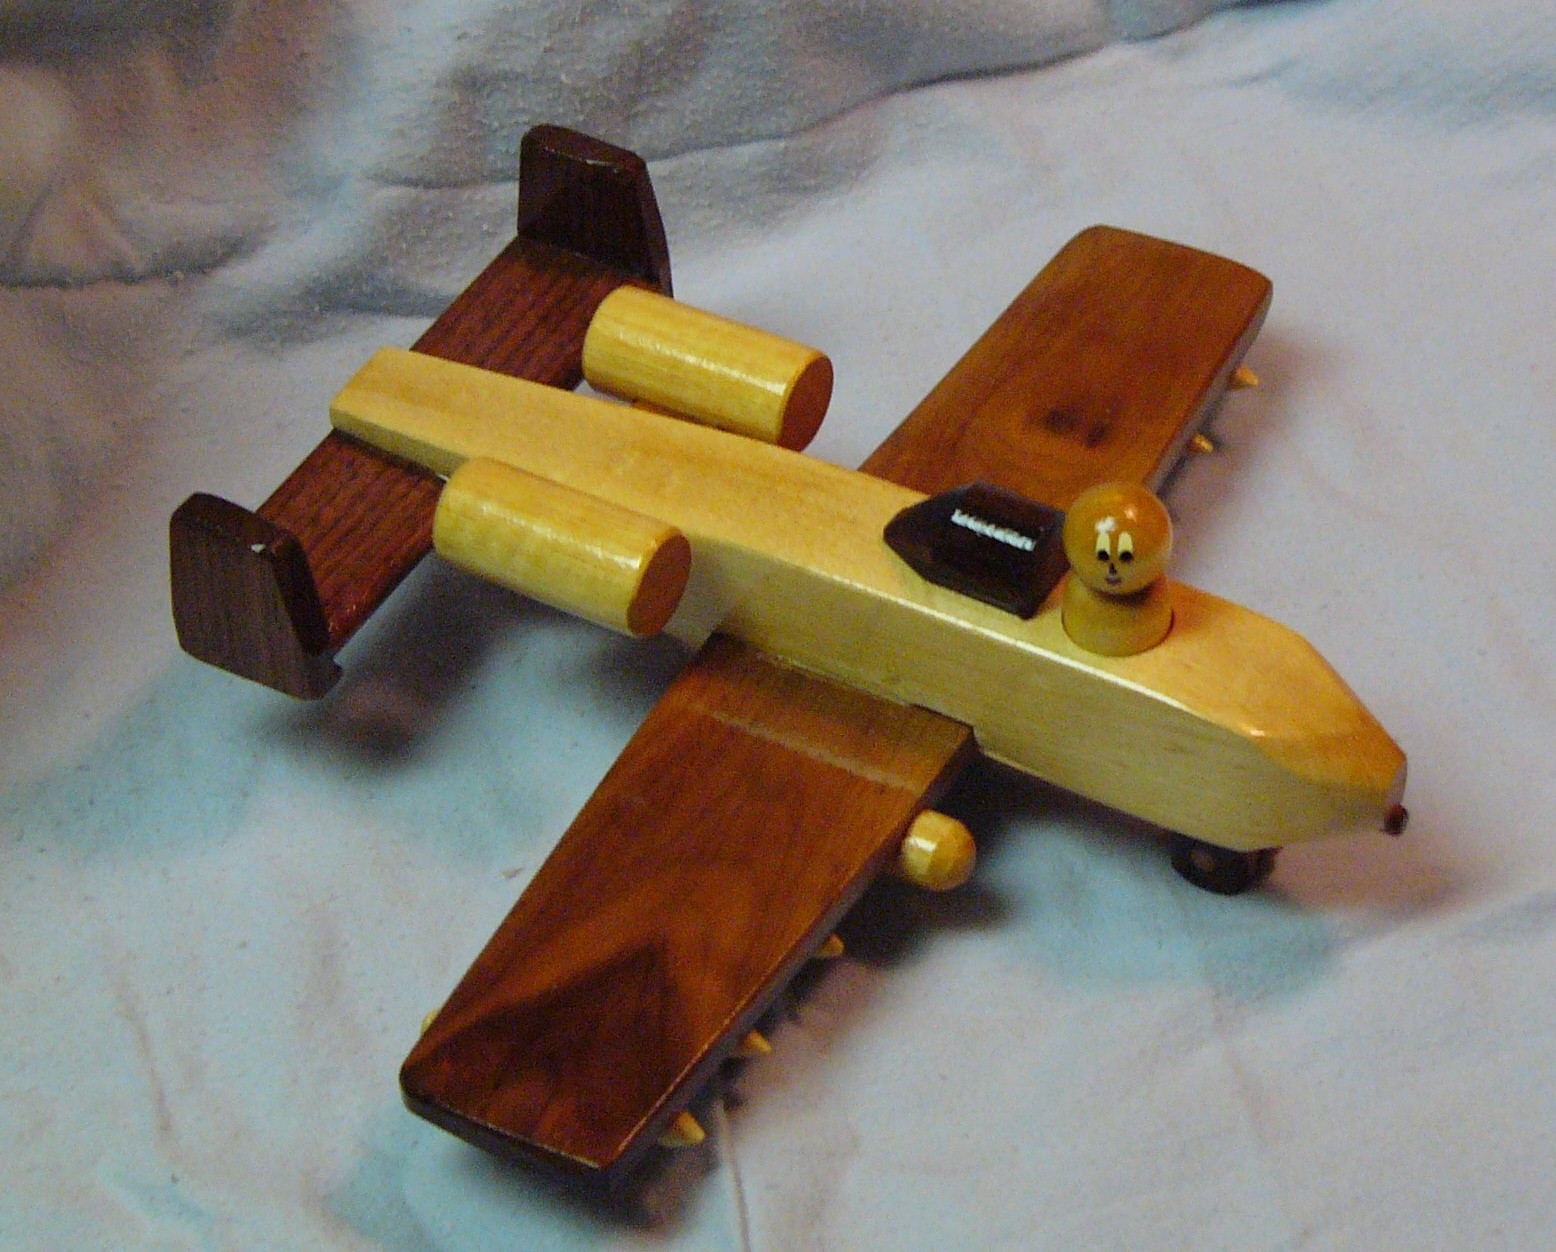 Build Model Wooden Planes DIY PDF woodworking on pbs « standing22sws